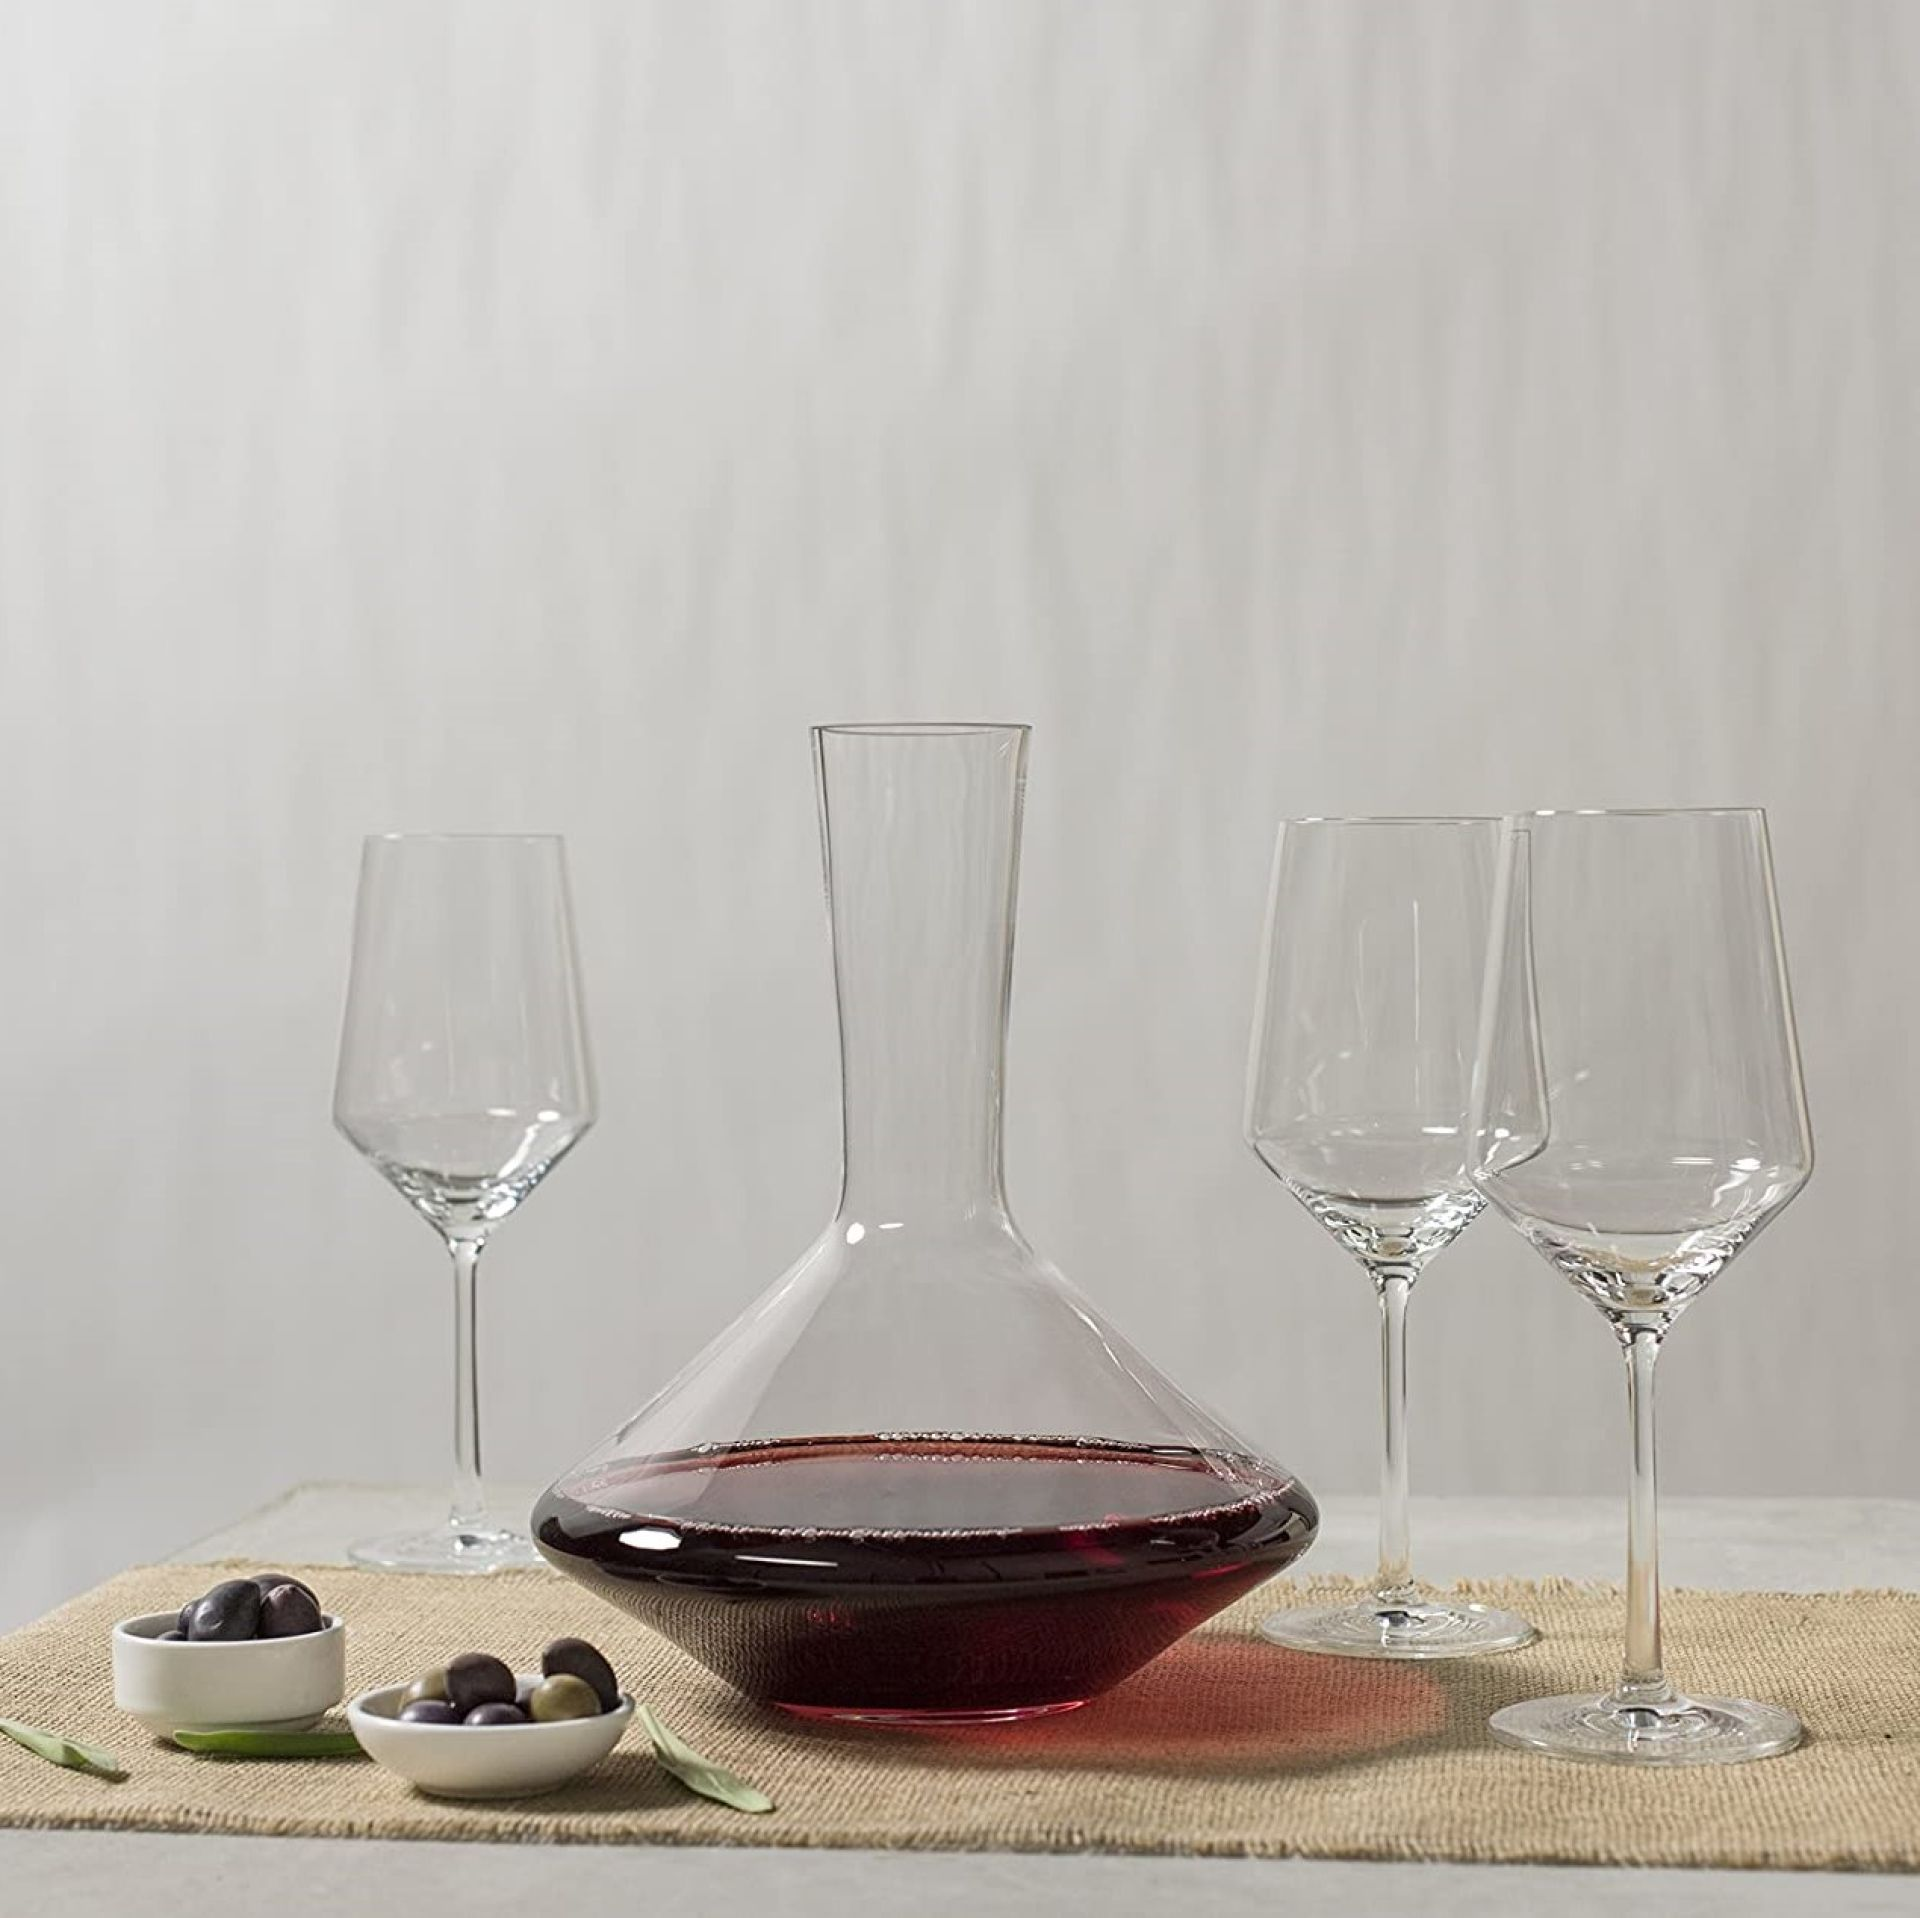 SCHOTT ZWIESEL Pure - Decanter #4